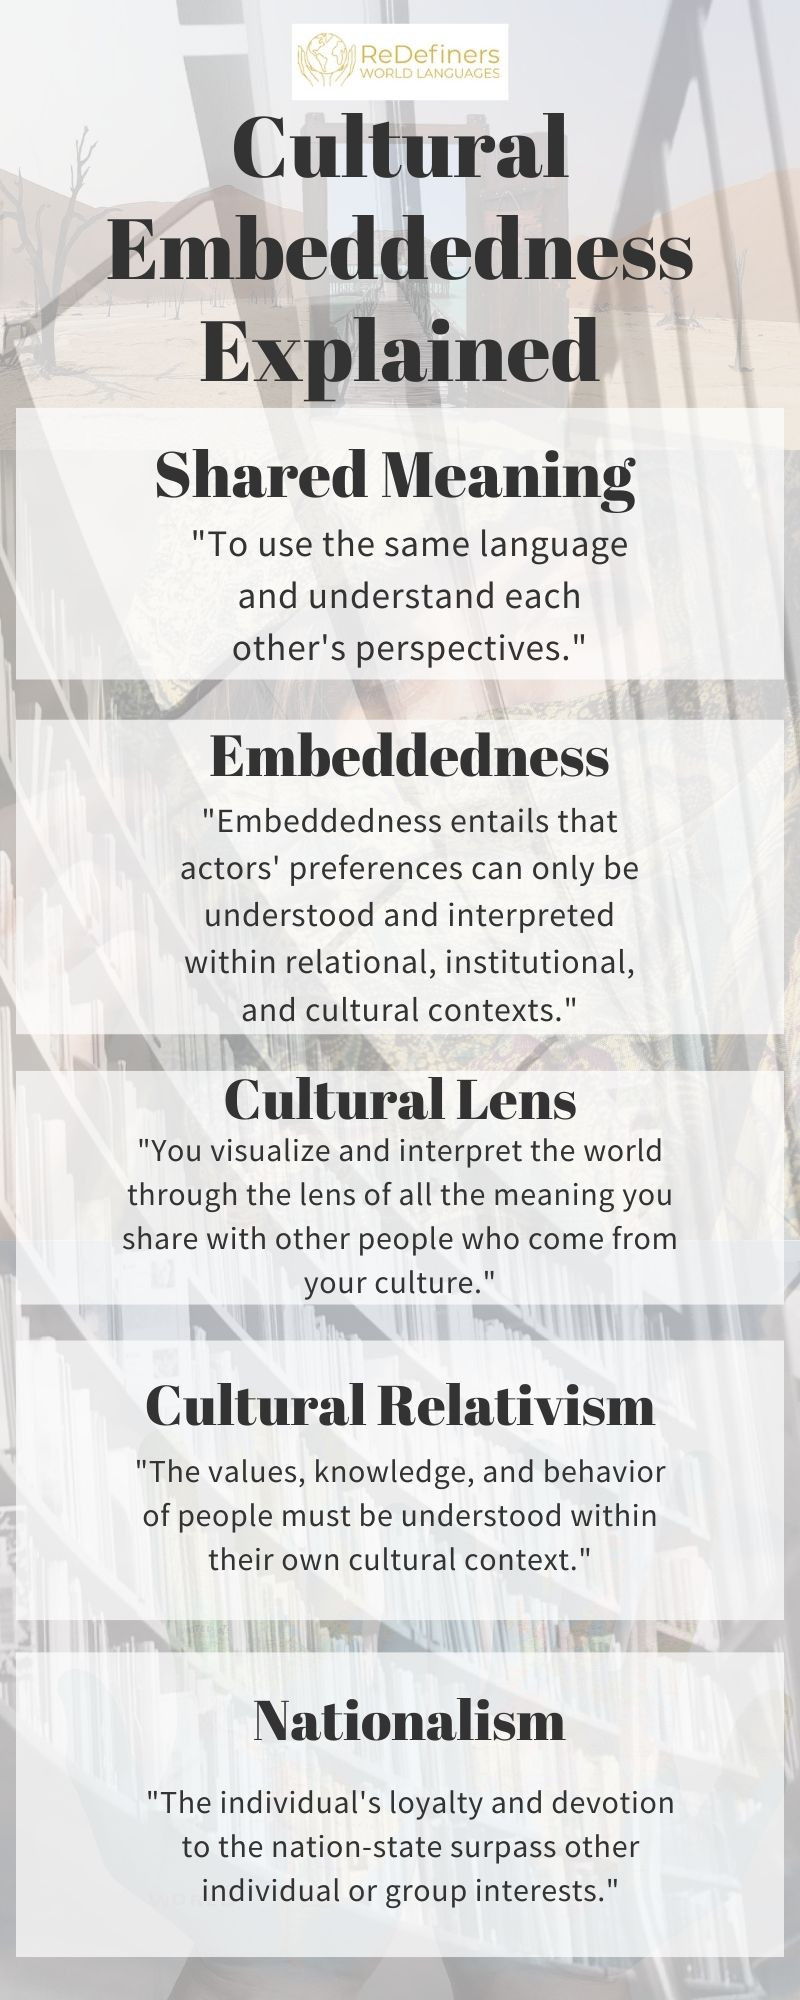 """This is an image of an infographic that defines five terms. From top to bottom, these terms are """"Shared Meaning,"""" """"Embeddedness,"""" """"Cultural Lens,"""" """"Cultural Relativism,"""" and """"Nationalism."""" Shared Meaning is """"To use the same language and understand each other's perspectives."""" Embeddedness """"entails that actors' preferences can only be understood and interpreted within relational, institutional, and cultural contexts."""" Cultural Lens is where """"You visualize and interpret the world through the lens of all the meaning you share with other people who come from your culture."""" Cultural Relativism is where """"The values, knowledge, and behavior of people must be understood within their own context."""" Finally, Nationalism is where """"The individual's loyalty and devotion to the nation-state surpass other individual or group interests."""